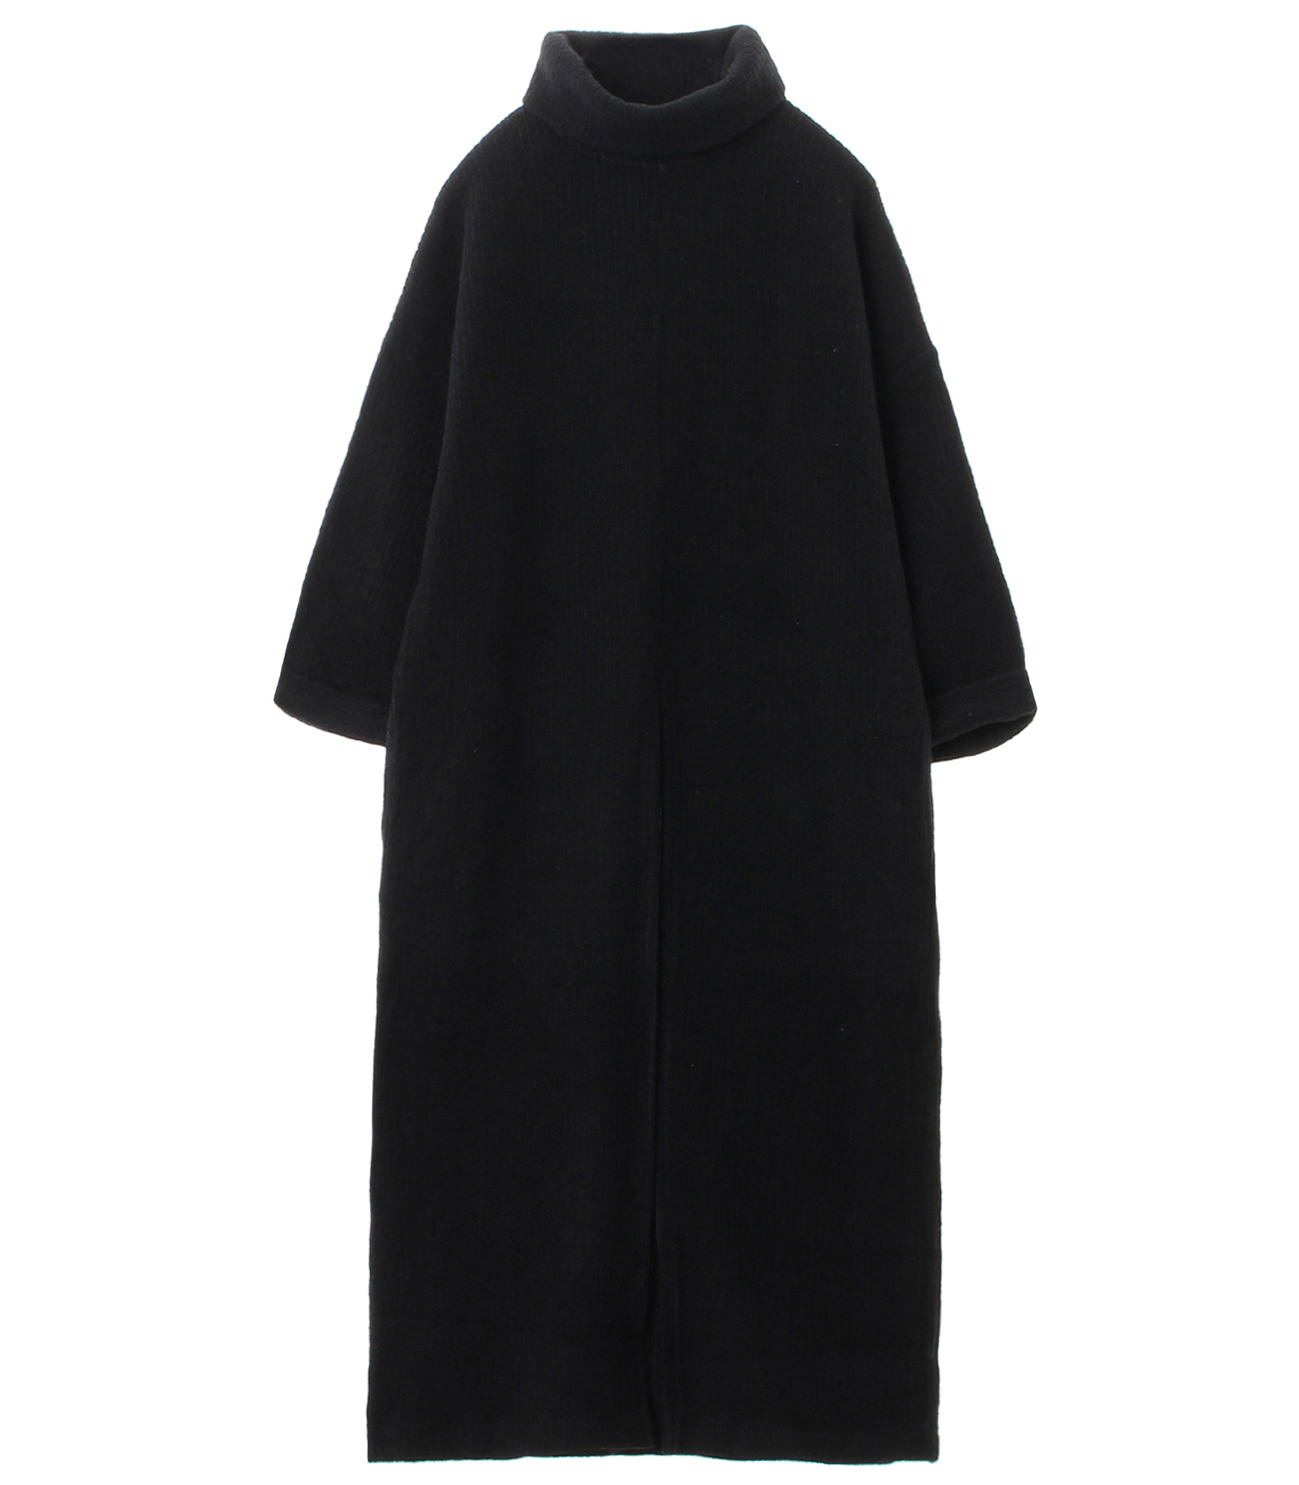 double faced rib sweater tunic t 詳細画像 black 1